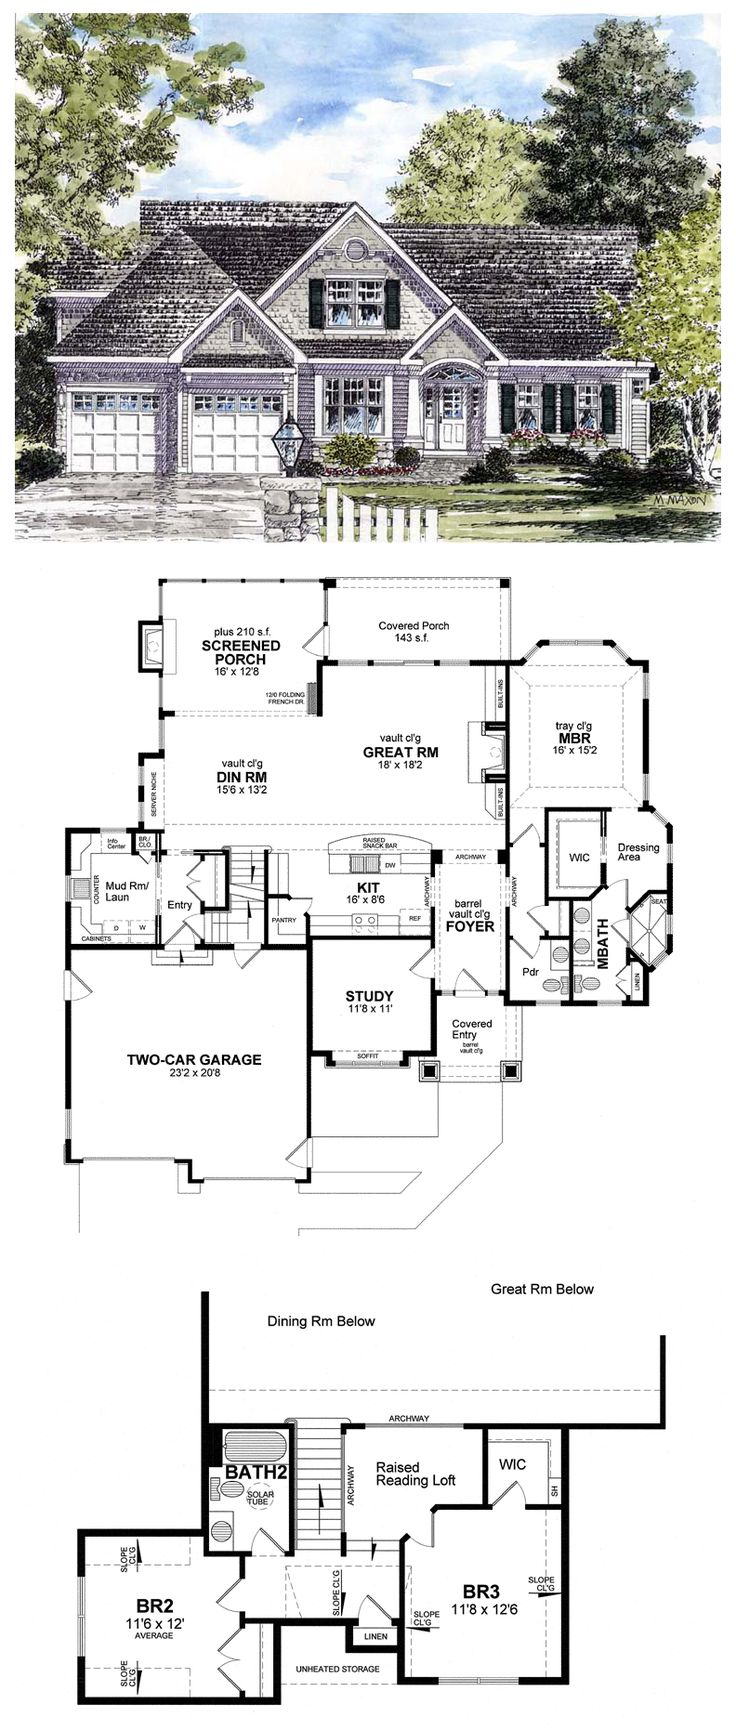 #CapeCod #HomePlan 94194 has 2308 square feet of living space, 3 bedrooms, 2.5 bathrooms and opens with a barrel vault ceiling in the foyer. An arched doorway leads to the master suite and guest bathroom. A vaulted ceiling adorns the dining room and the great room with its fireplace and built-in bookcases. Kitchen, mud room and study complete the main level. Upstairs, we have 2 bedrooms, a shared bath and a raised reading loft.